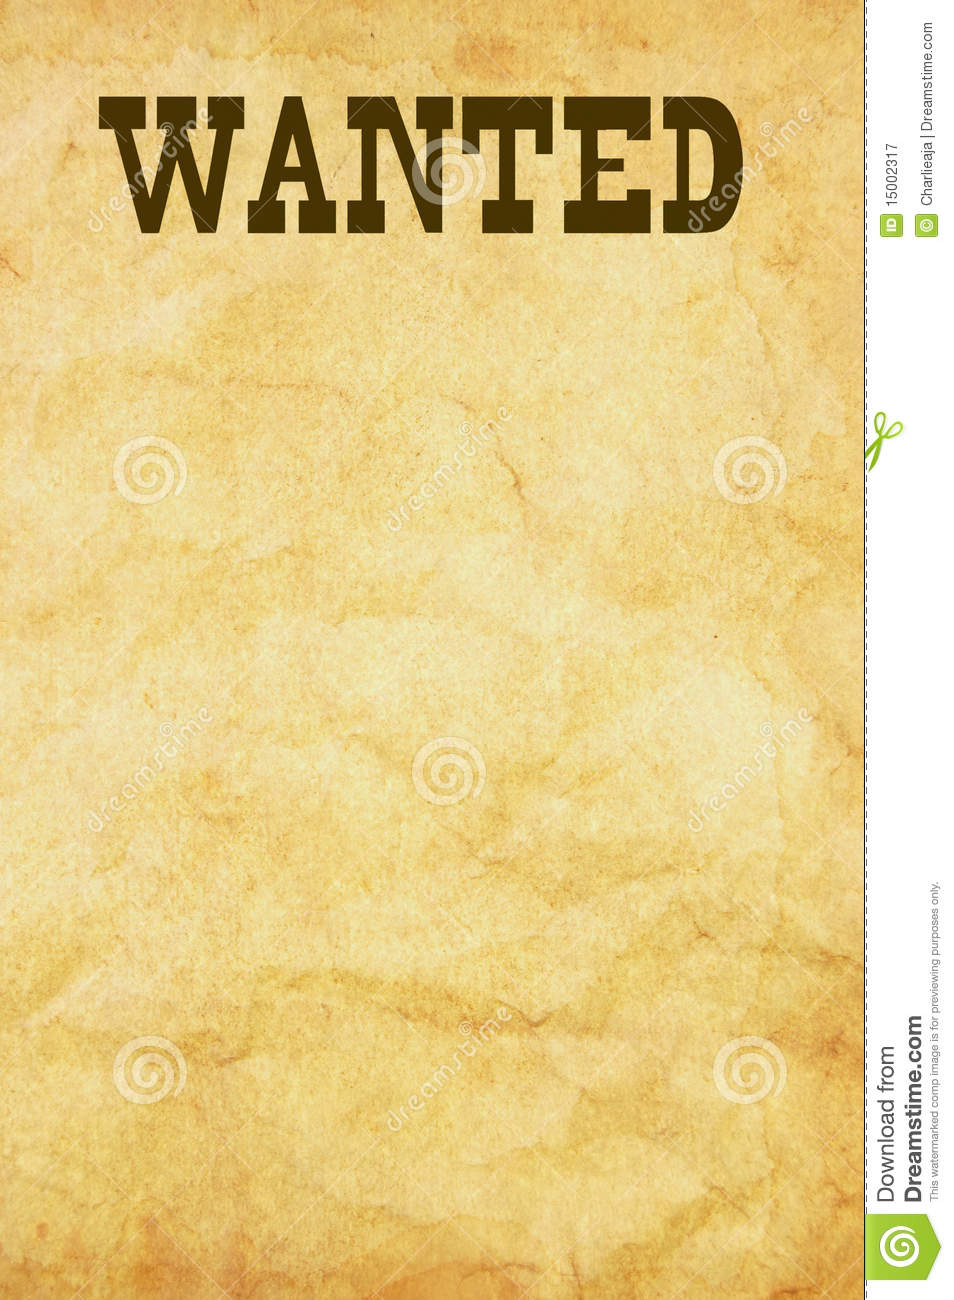 Western wanted poster clipart 5 » Clipart Station.